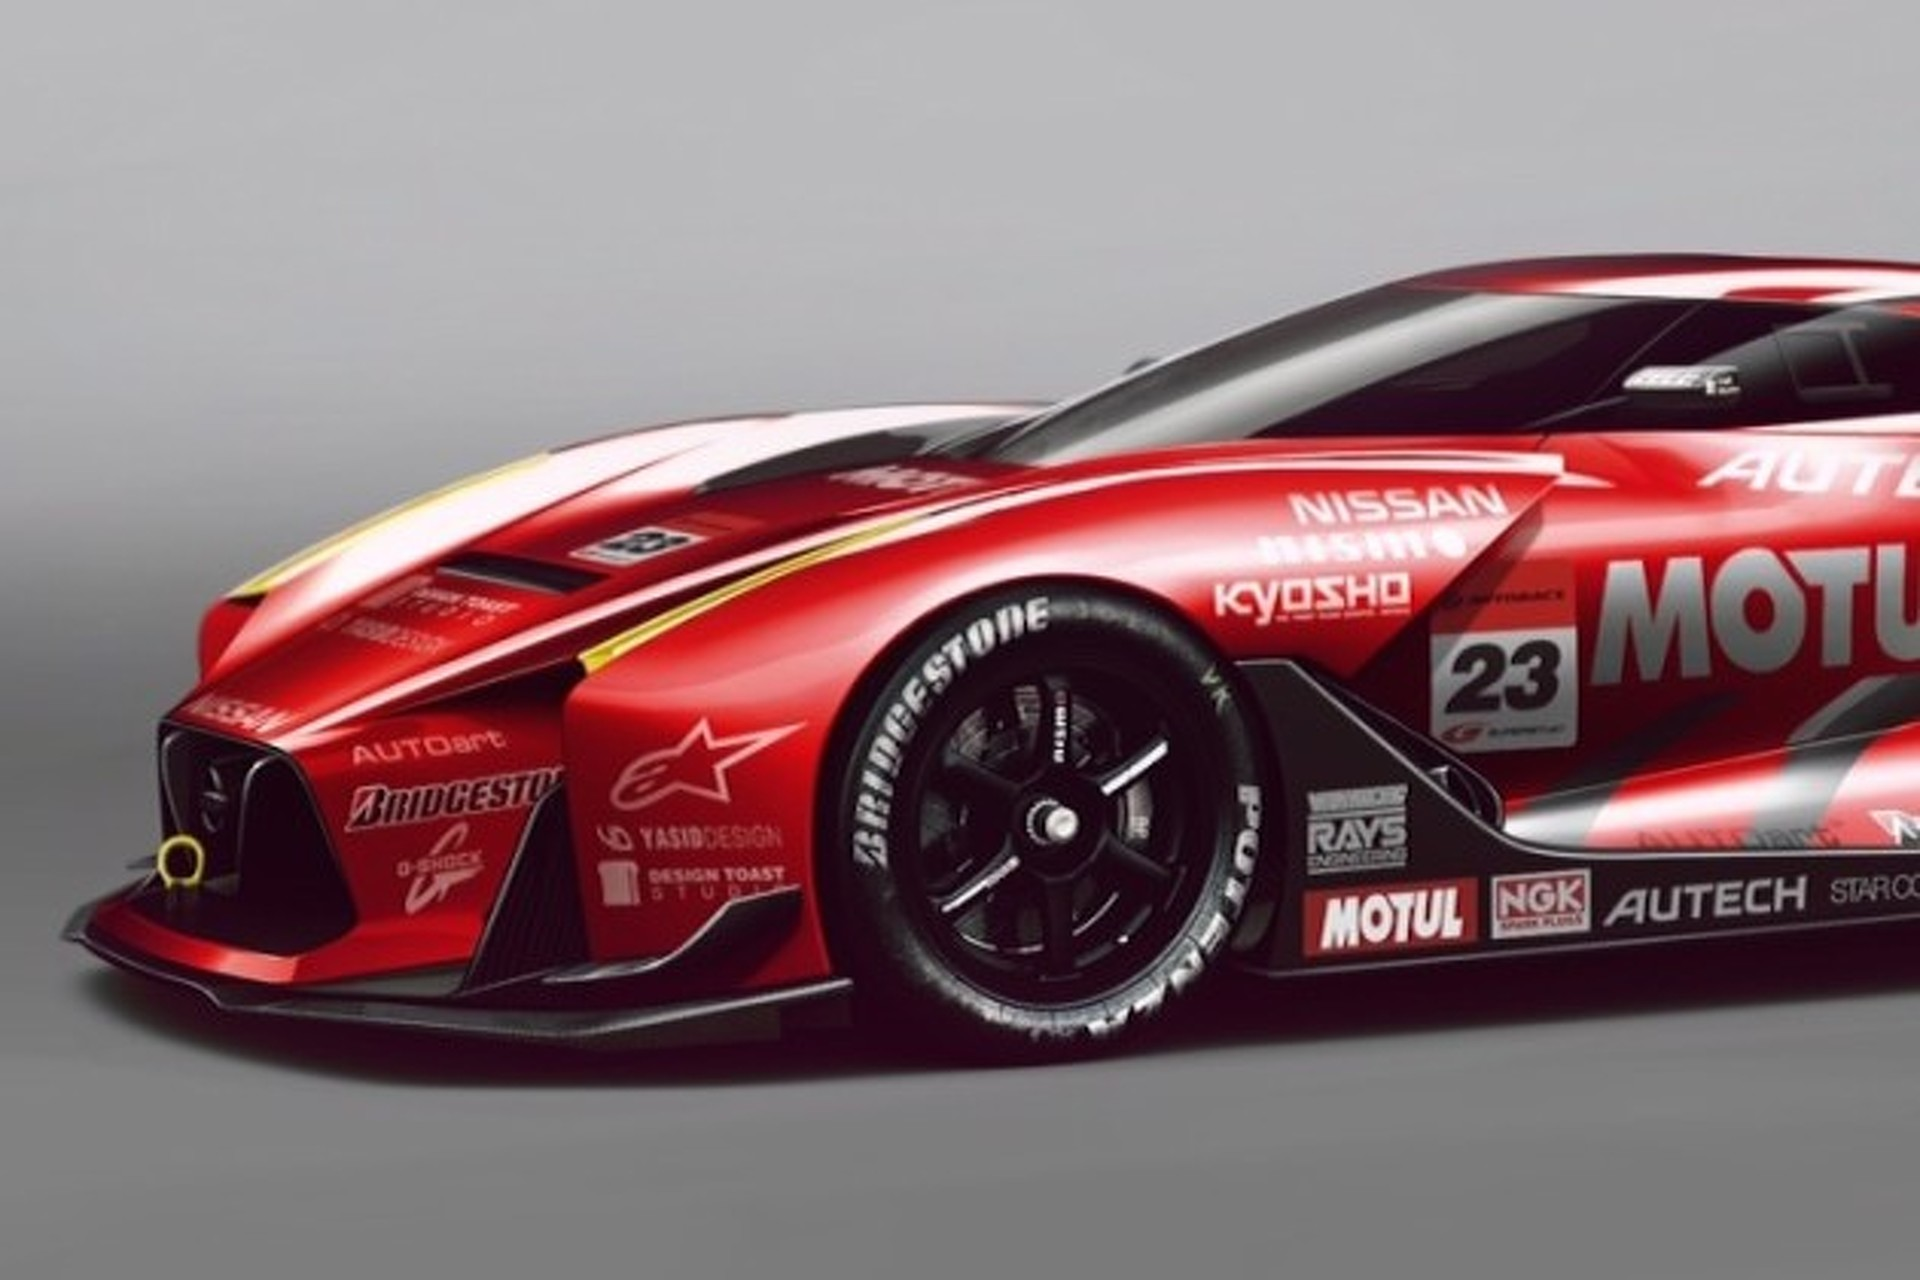 Nissan 2020 GT Concept Covered in Awesome Racing Livery